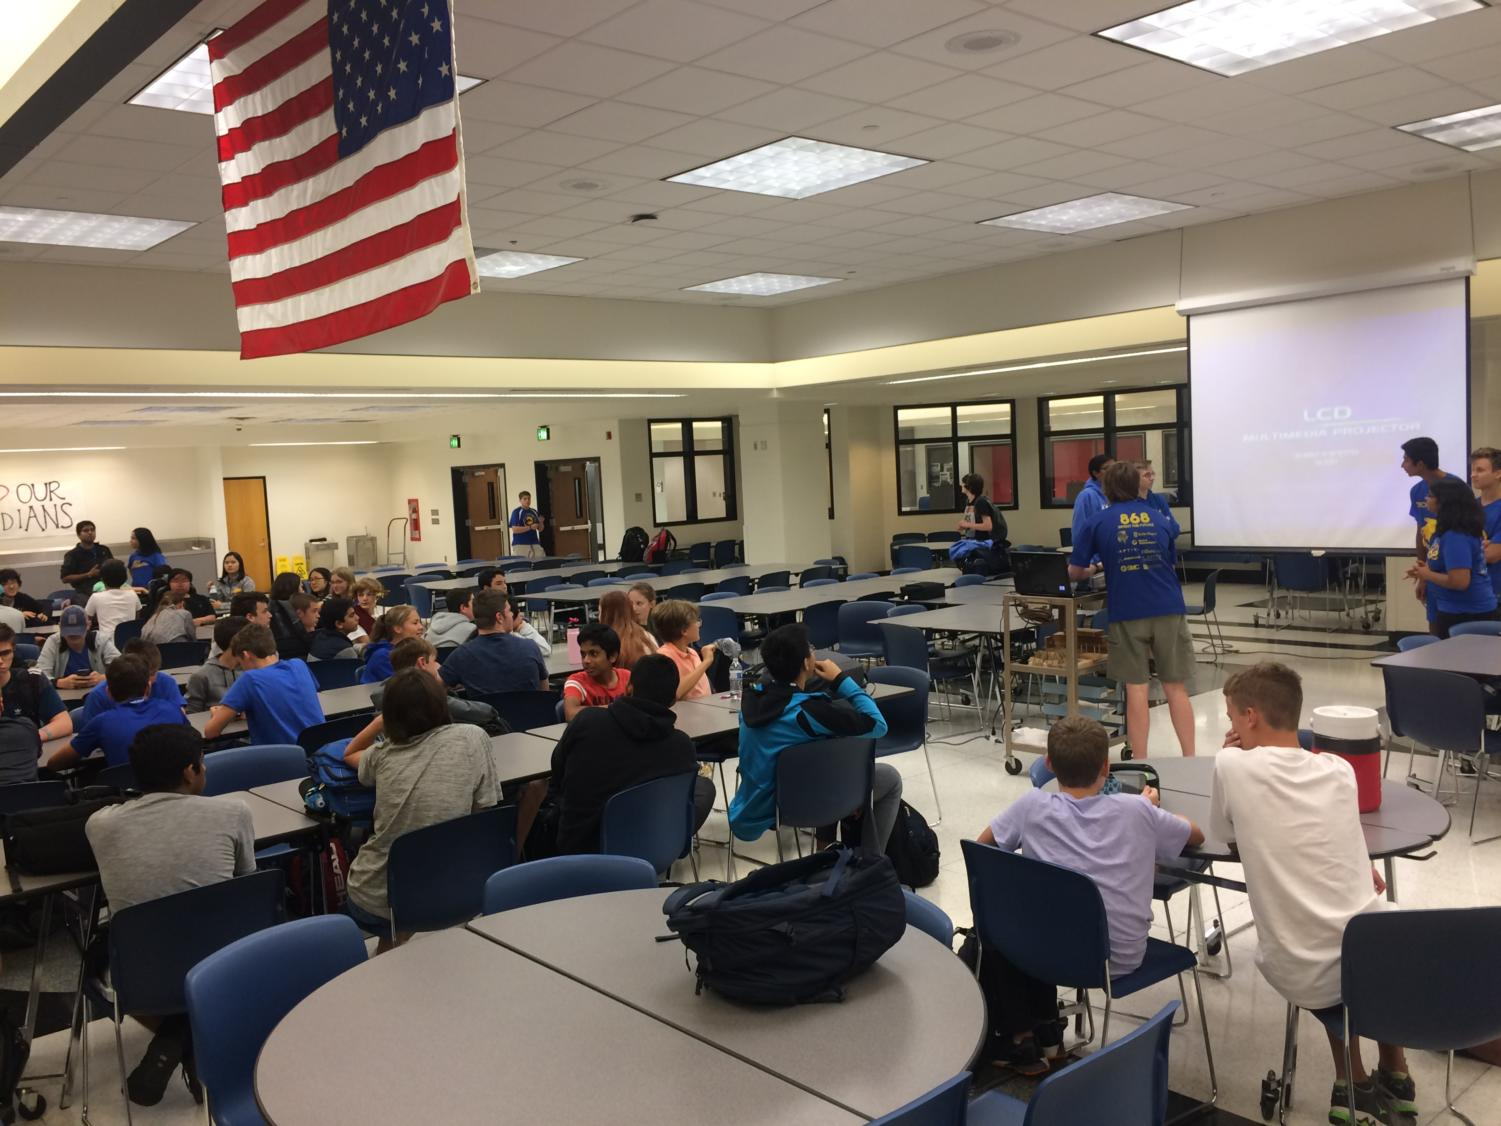 TechHOUNDS leaders greet new members and discuss team expectations at the callout meeting on Sept. 13.